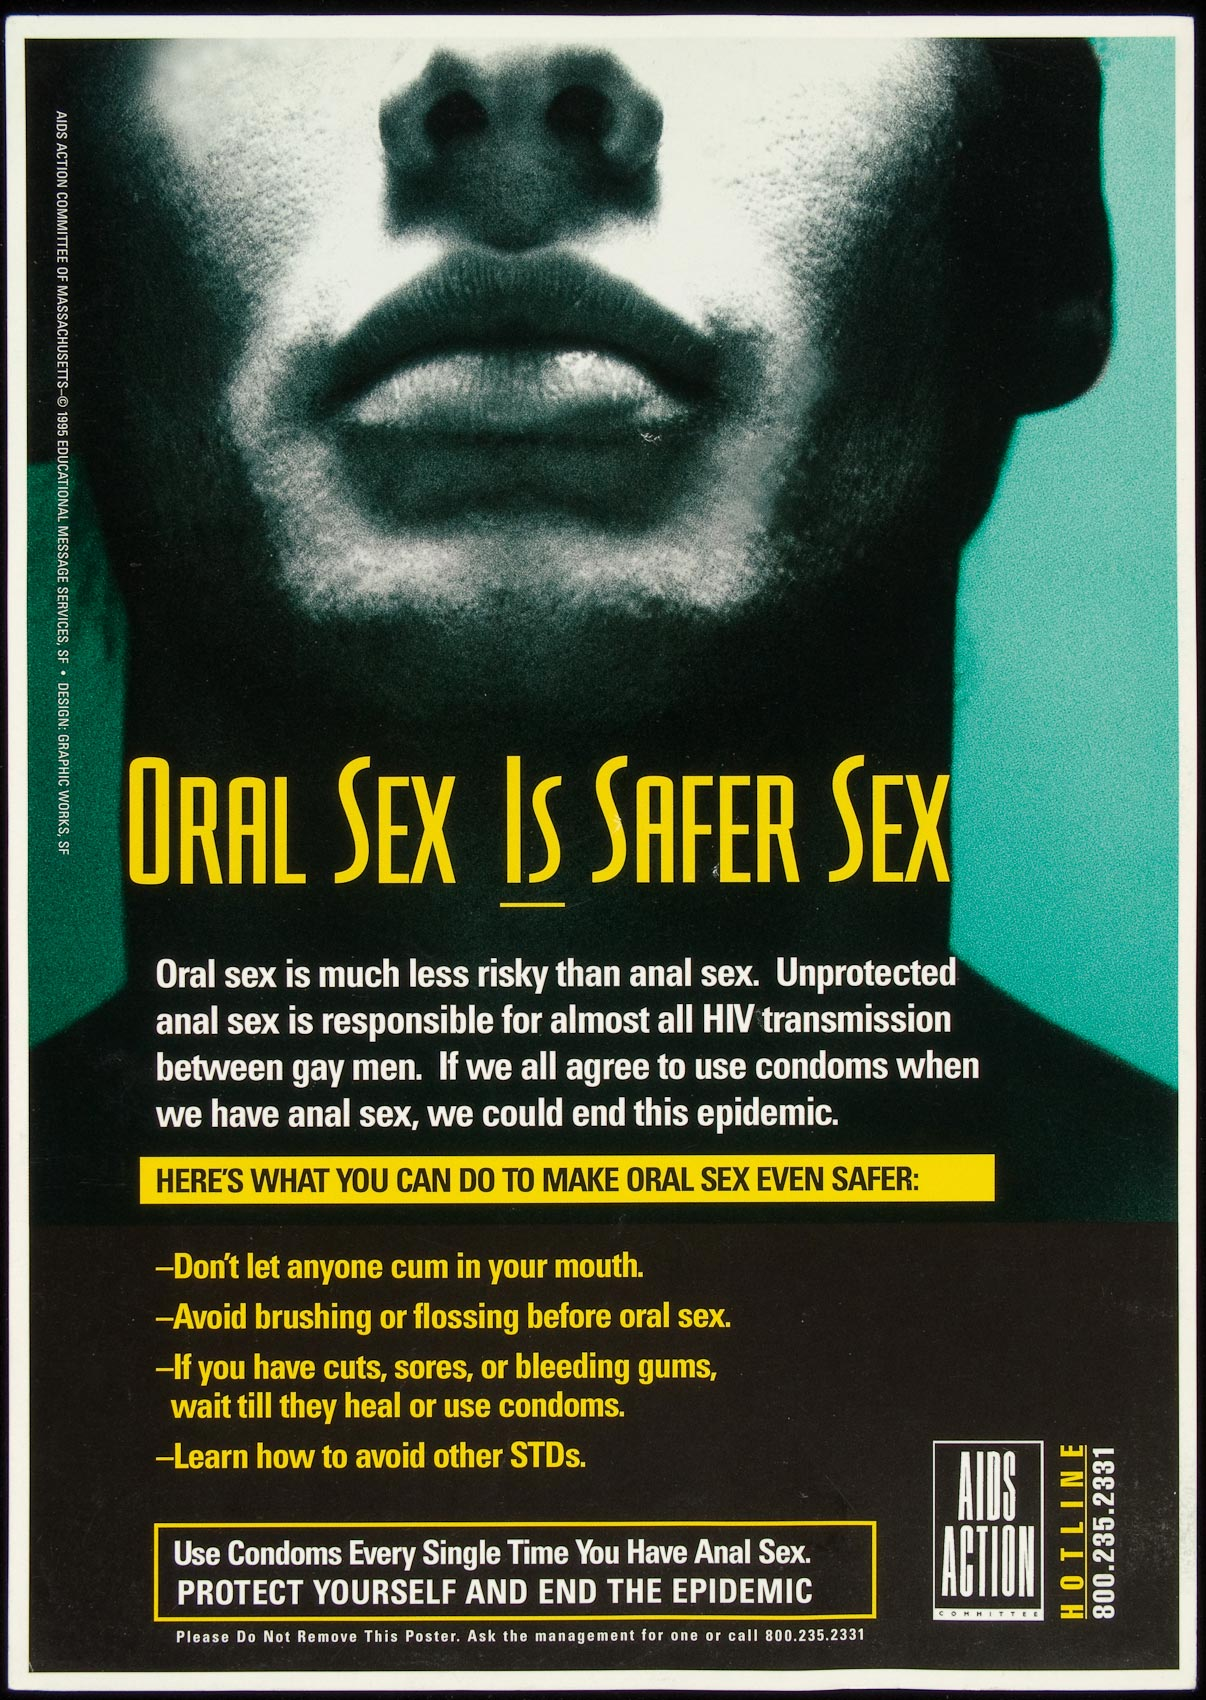 oral-sex-safe-sex-aids